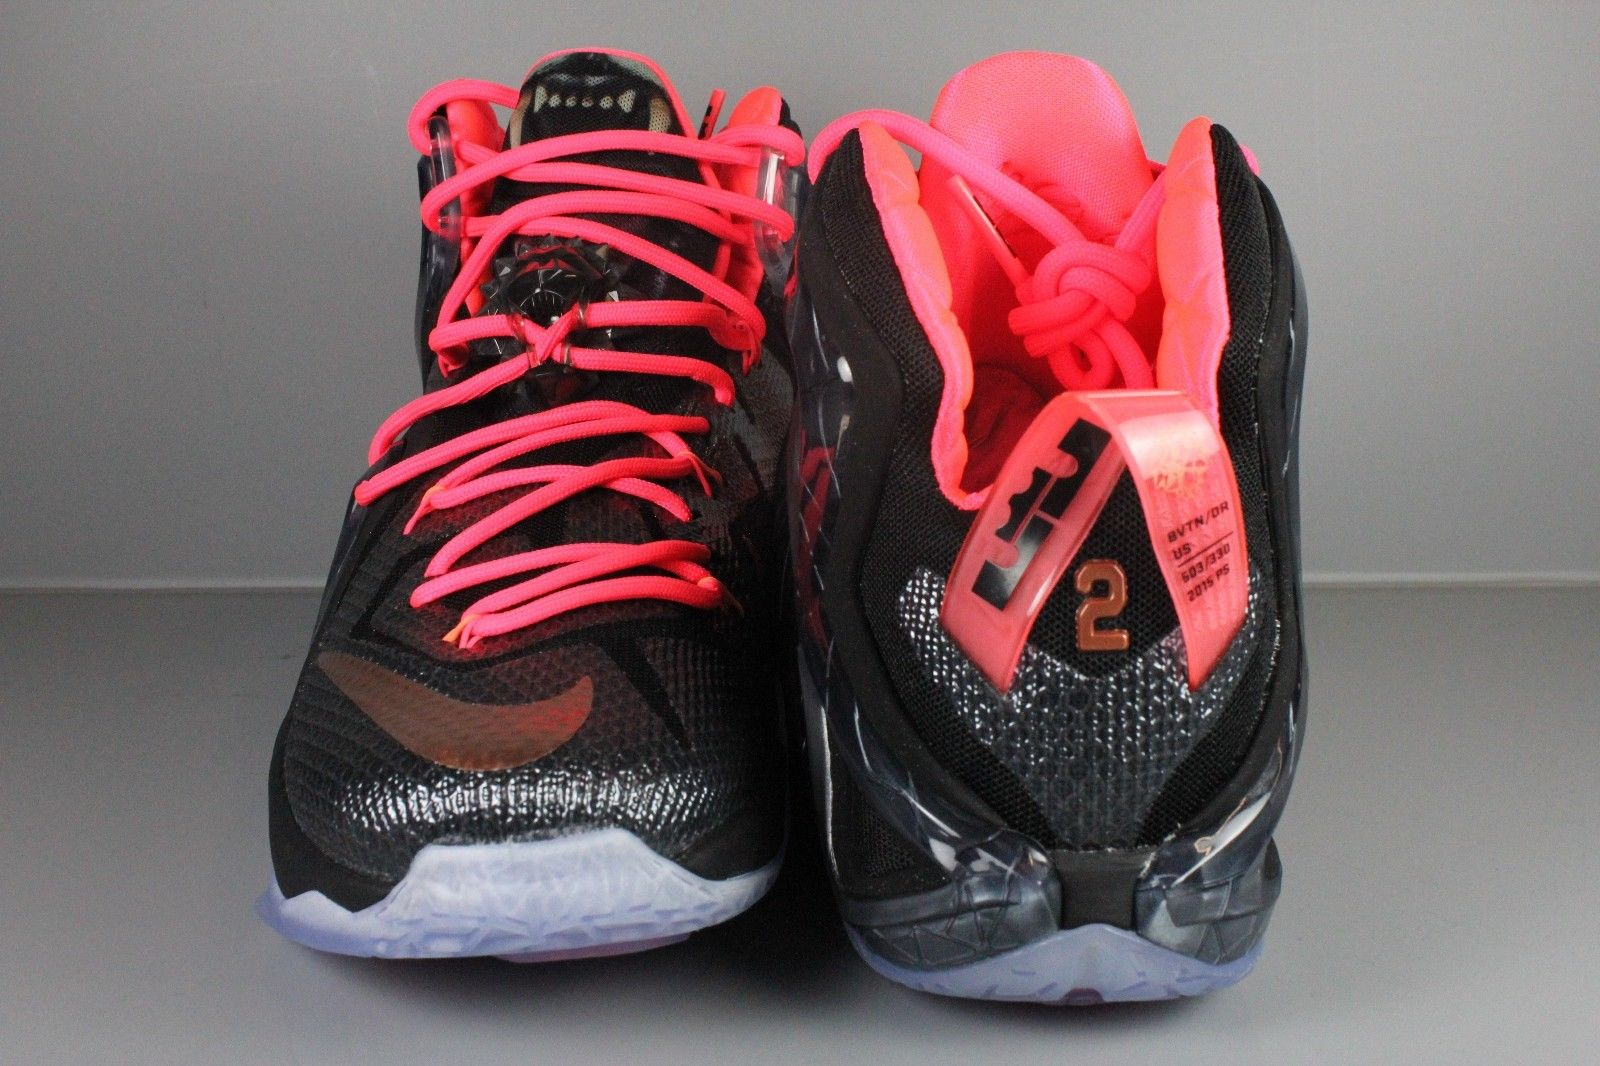 69af6fb835ca ... get will lebron james ever wear this nike lebron 12 elite sole  collector d8aa0 d42ee